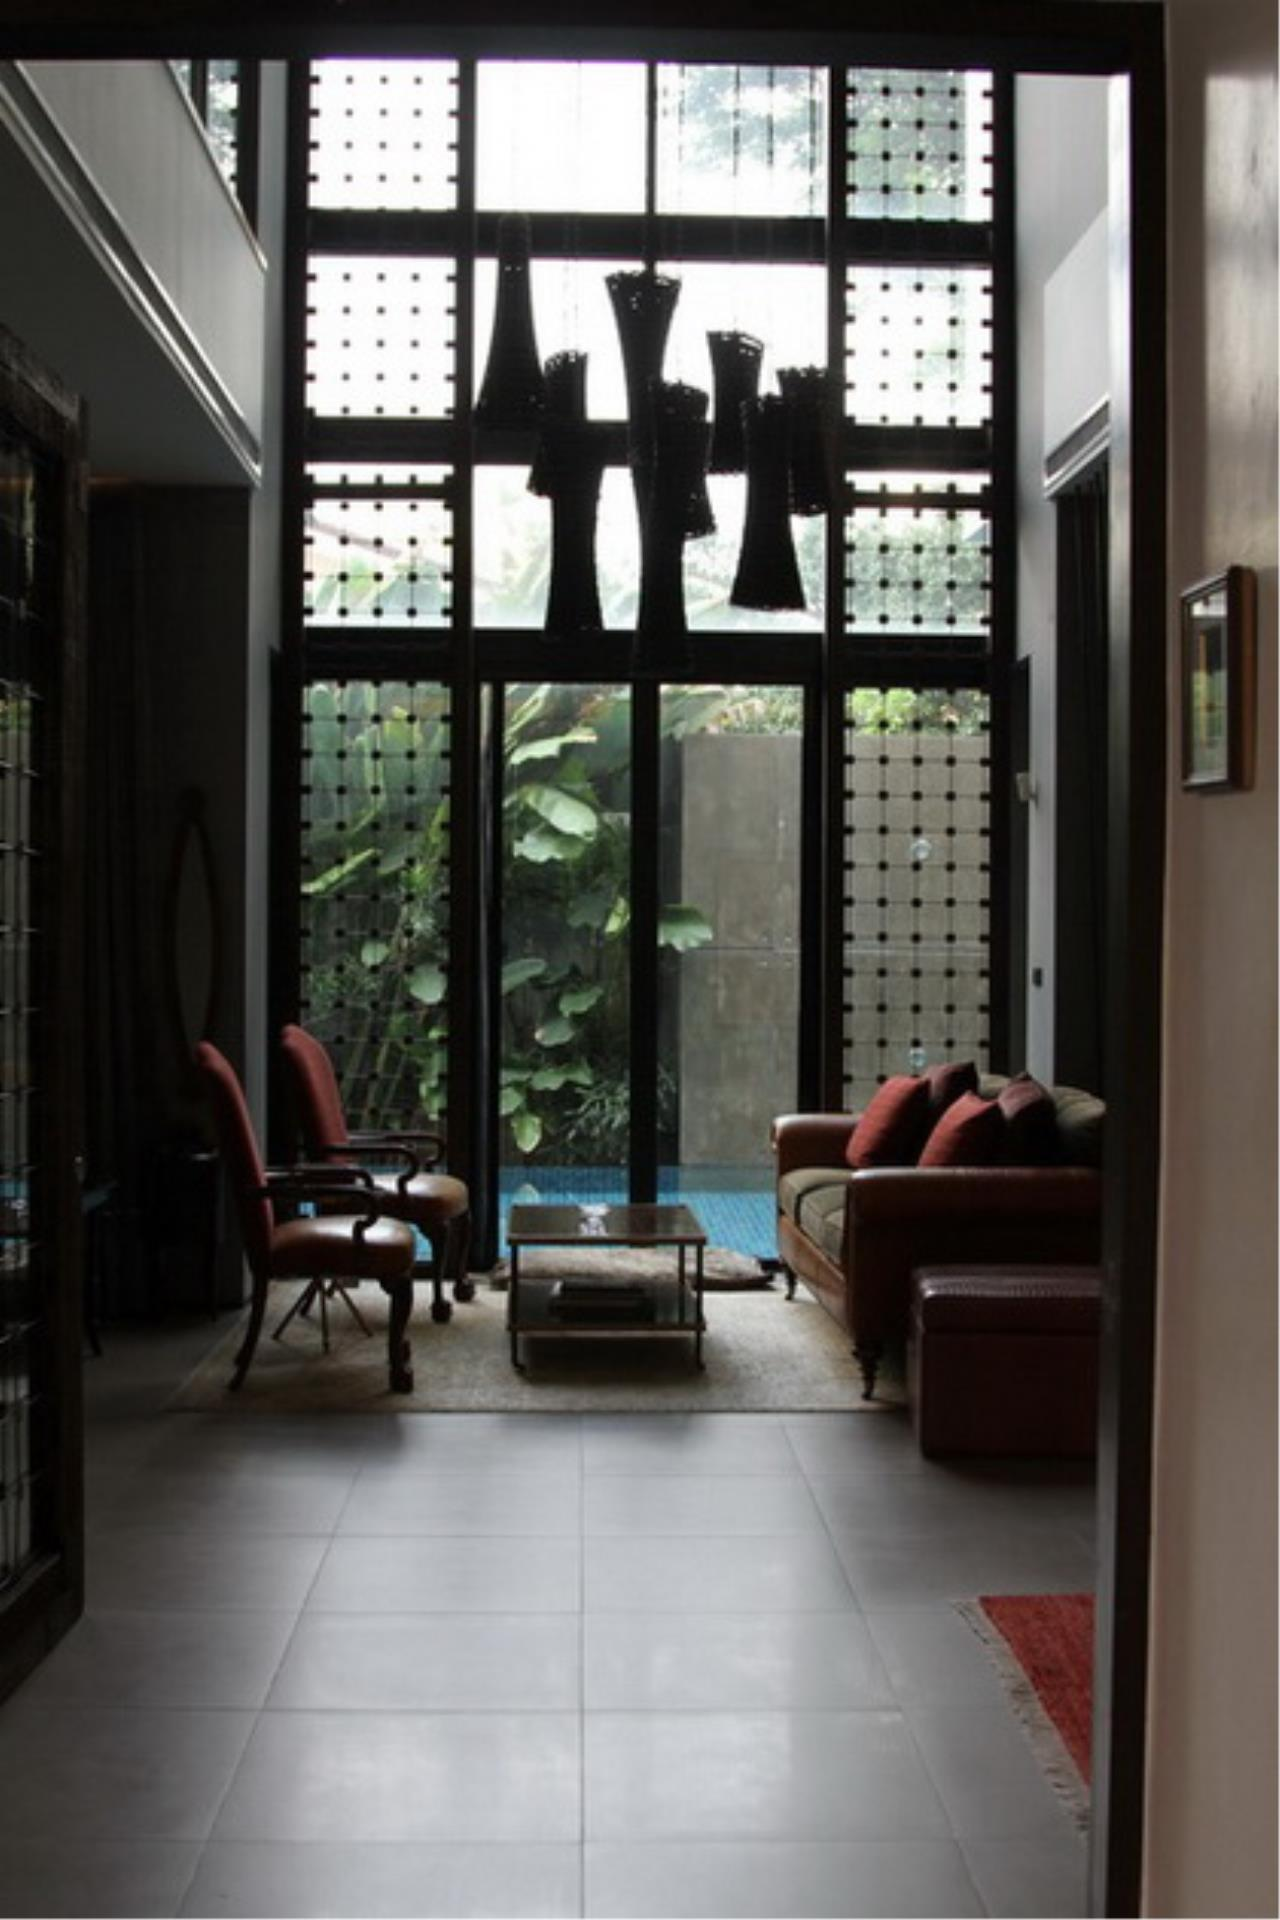 Best BKK Condos Agency's Luxury House with Pool, Phrom Phong - 752 Sq.m (Total area : 1250 Sq.m) - For sale: 270 MB THB 6